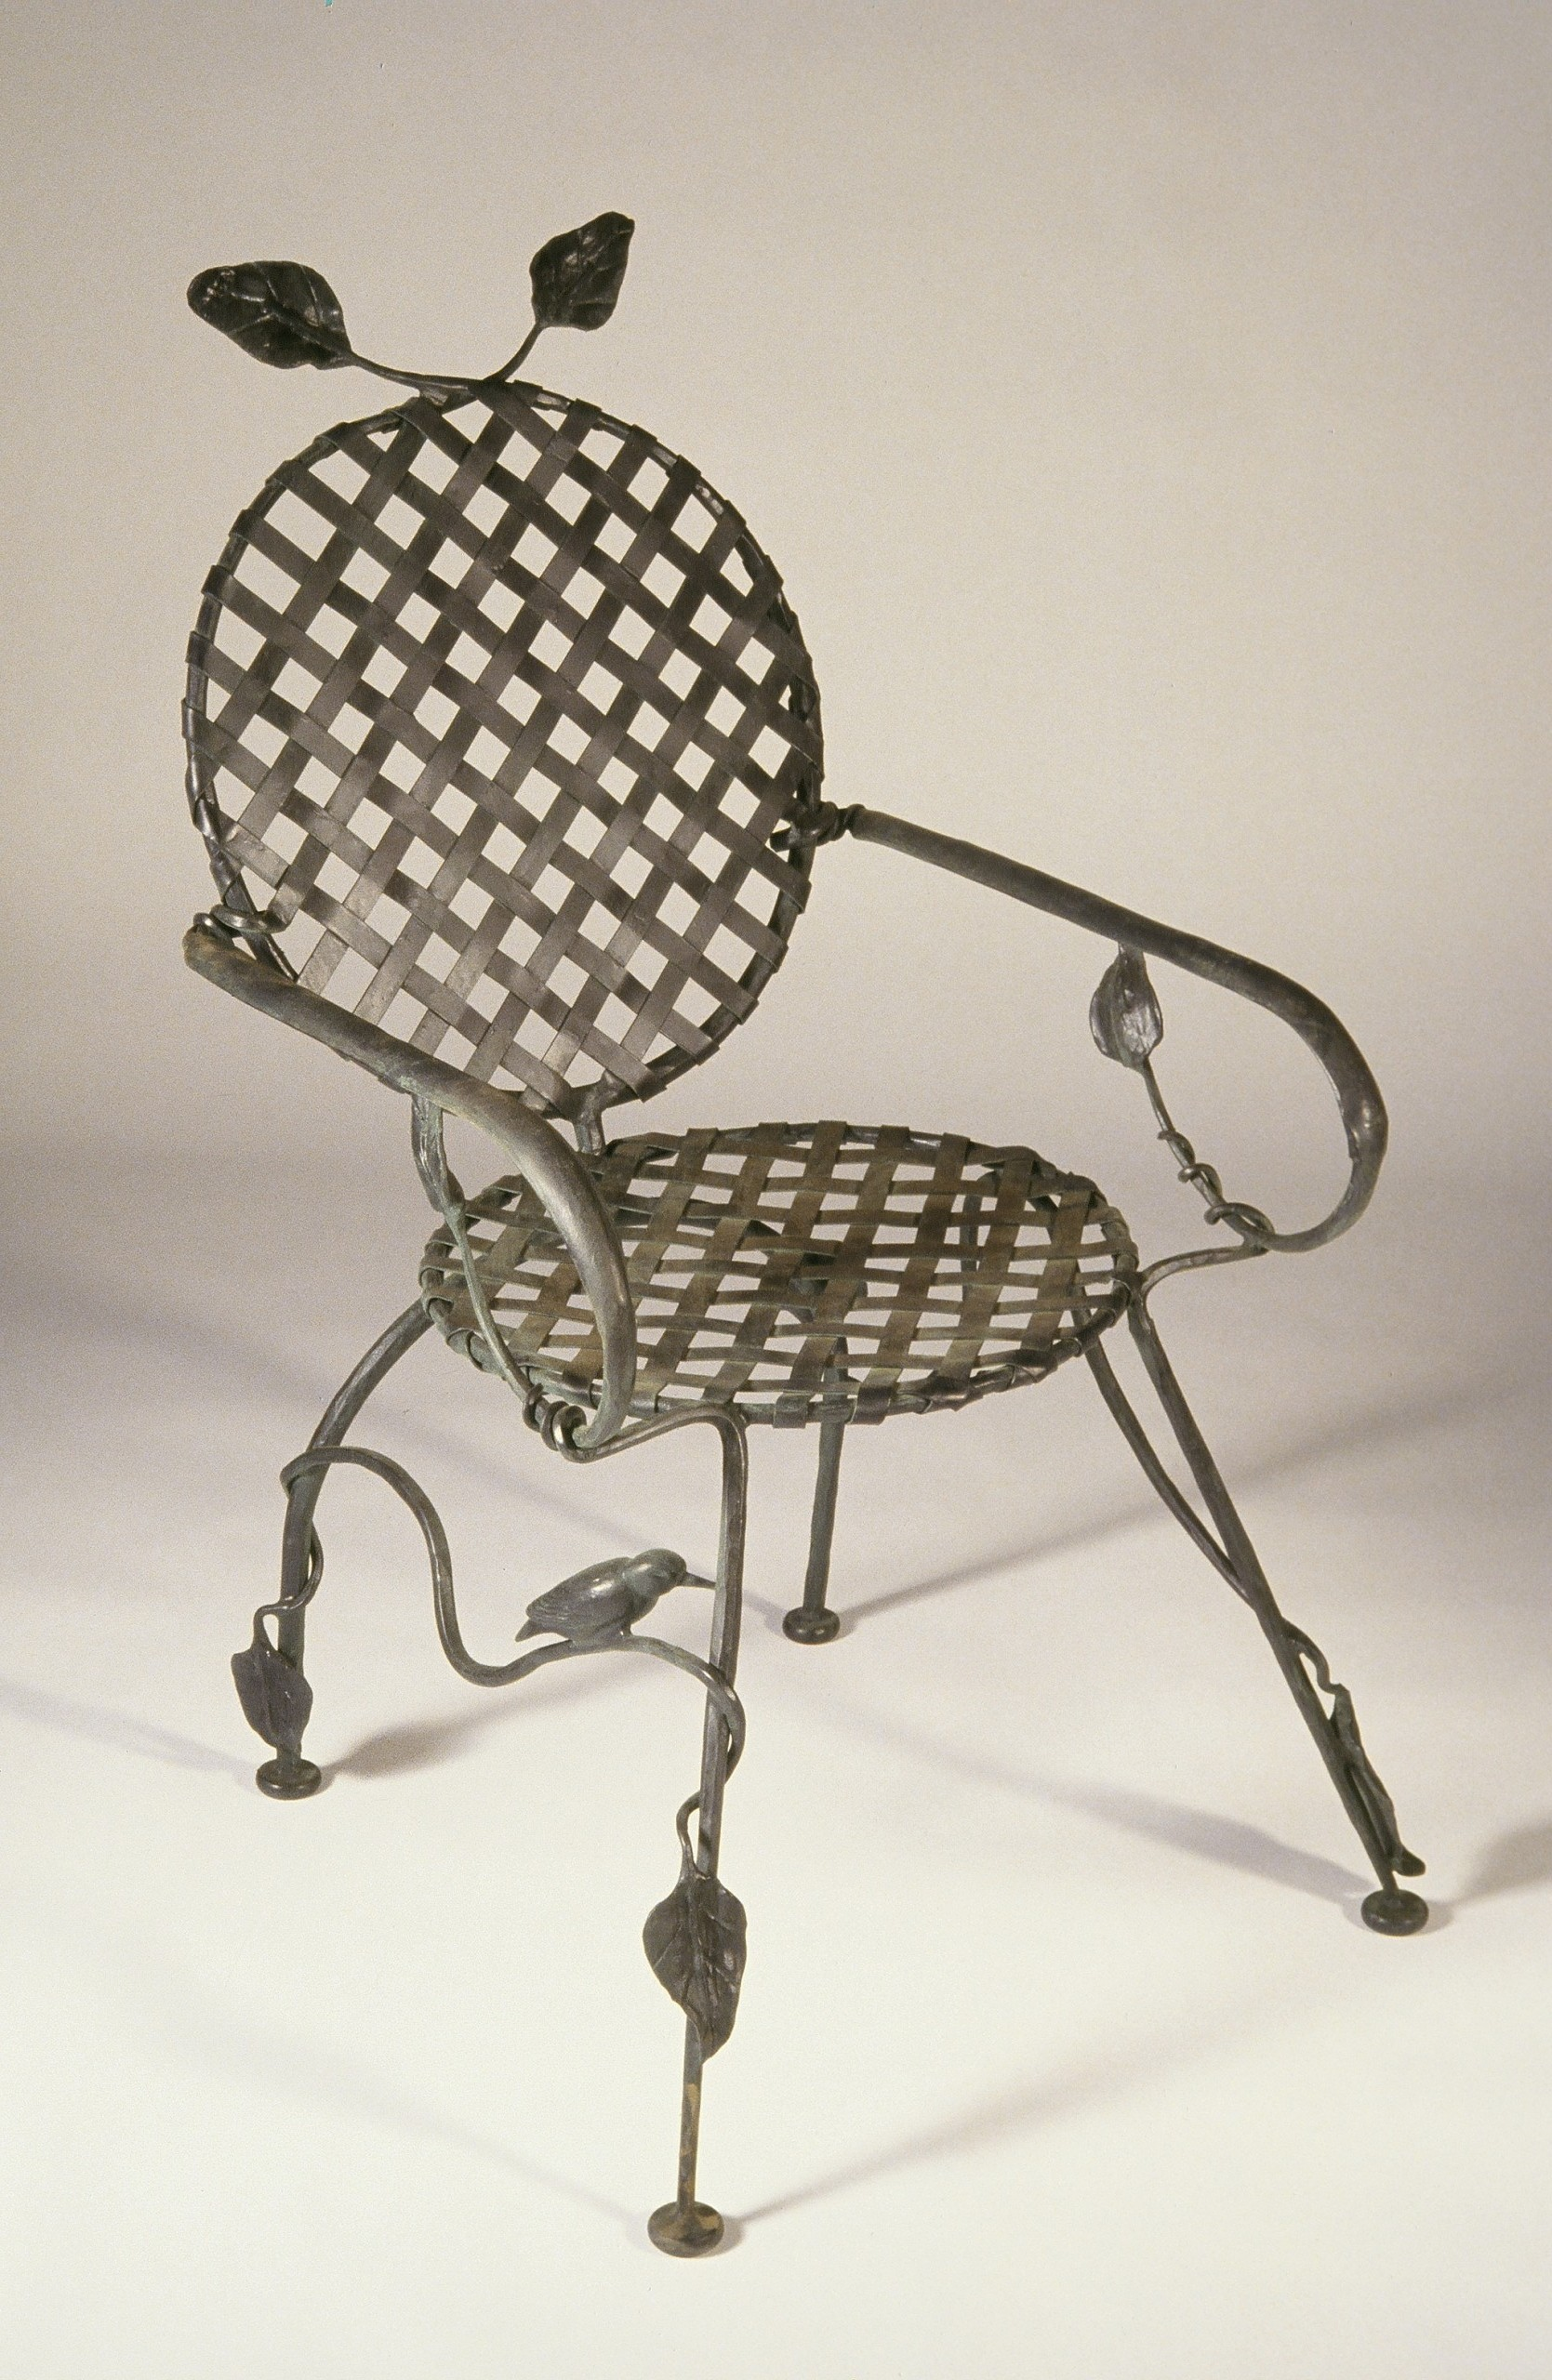 Kaviar Forge Chair